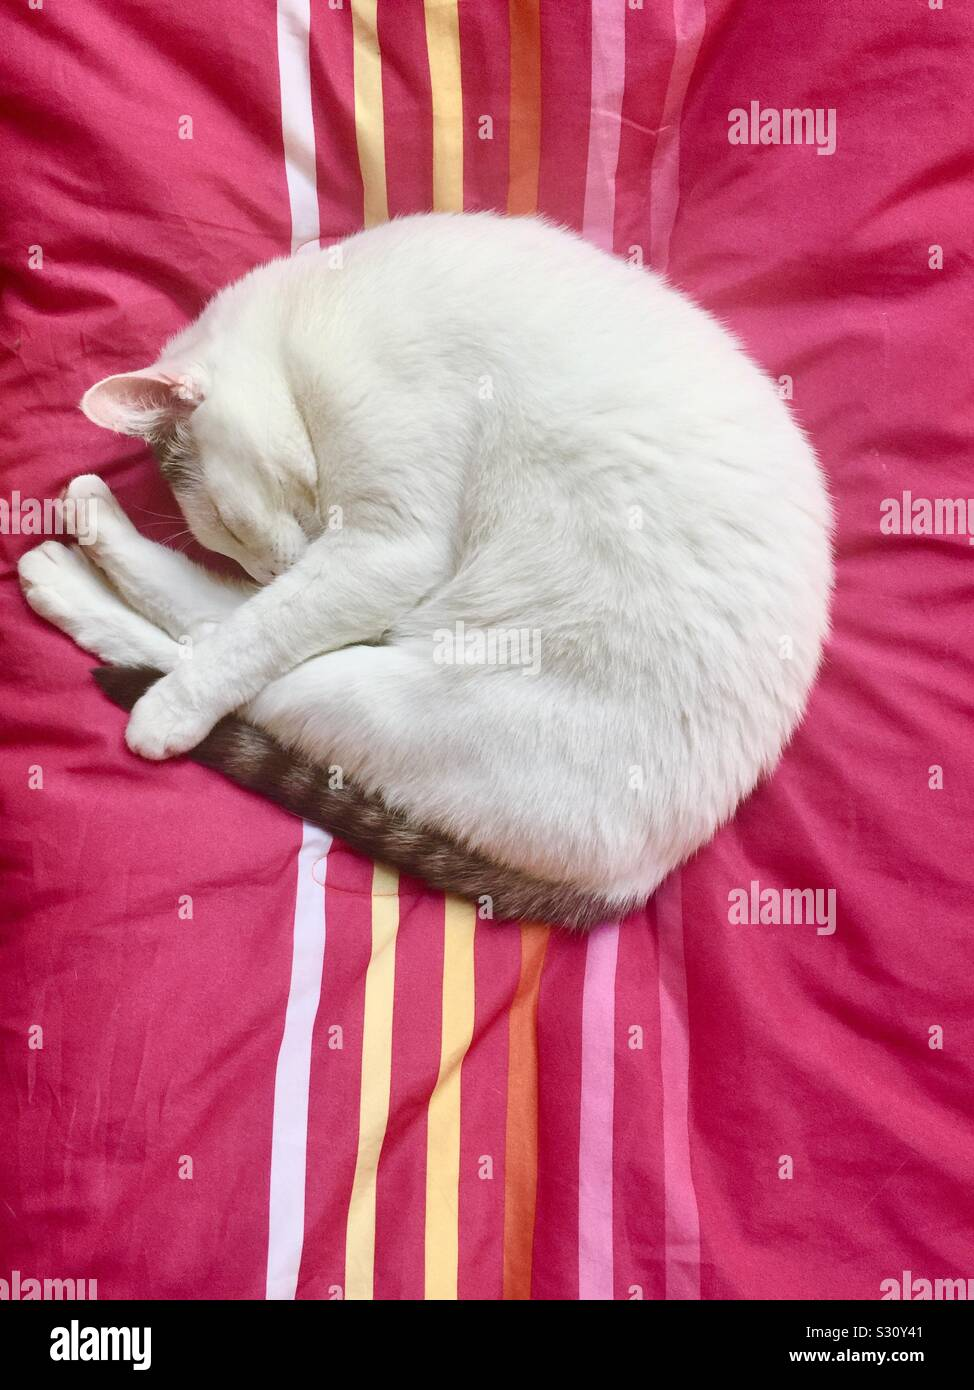 White cat holding its striped tail, curled up on a pink blanket with colorful stripes. Stock Photo